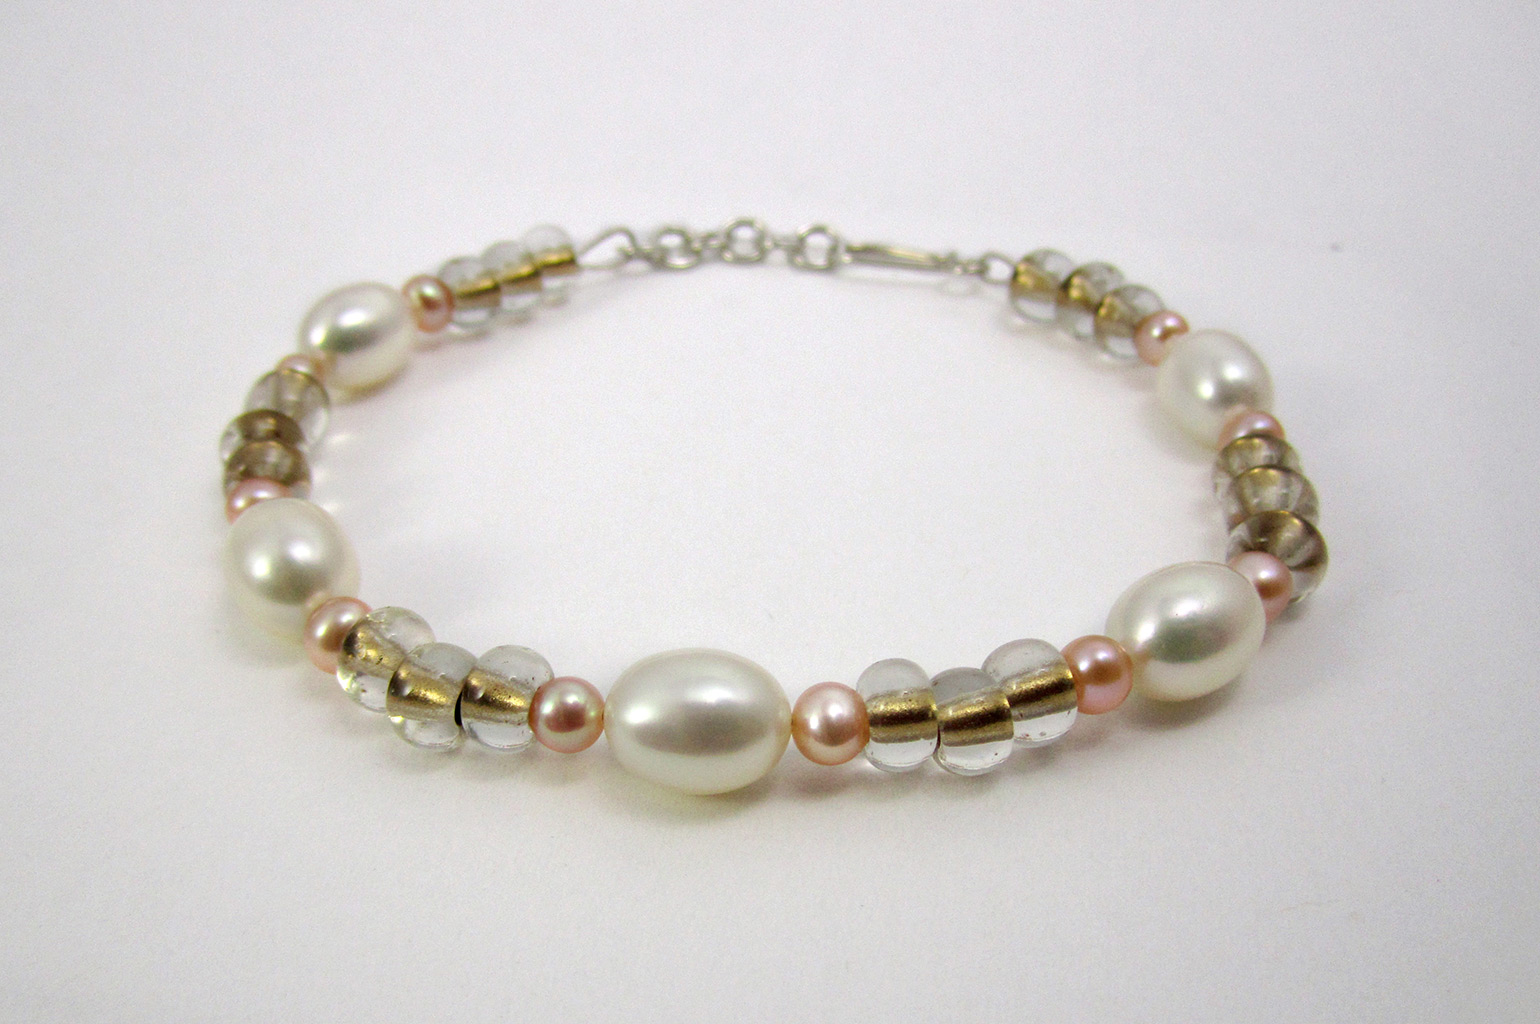 Bracelet for the mother of the bride